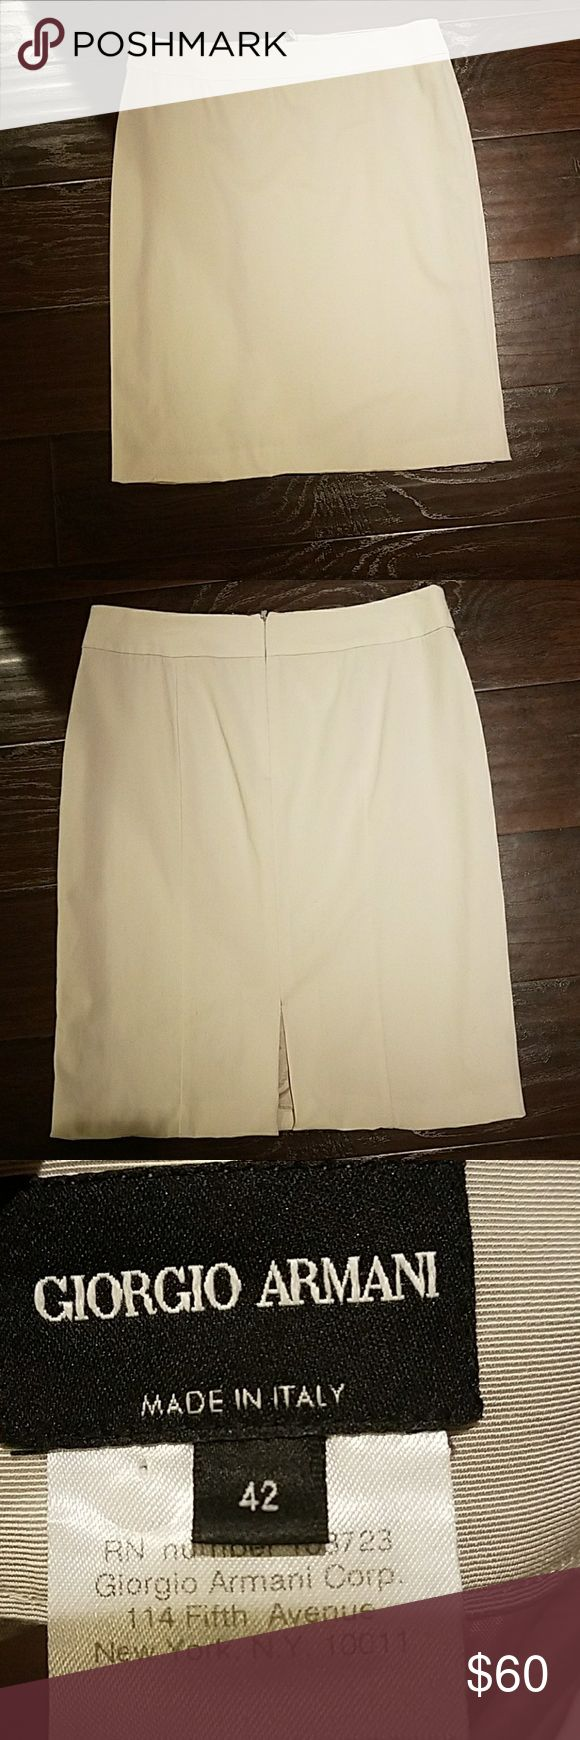 """Giorgio Armani beige pencil skirt Like new Giorgio Armani skirt with no signs of wear. Fully lined with an invisible back zipper. Made in Italy Fits an 8/10  Waist 16"""" Hips 19"""" Length  22.5"""" Giorgio Armani Skirts Pencil"""